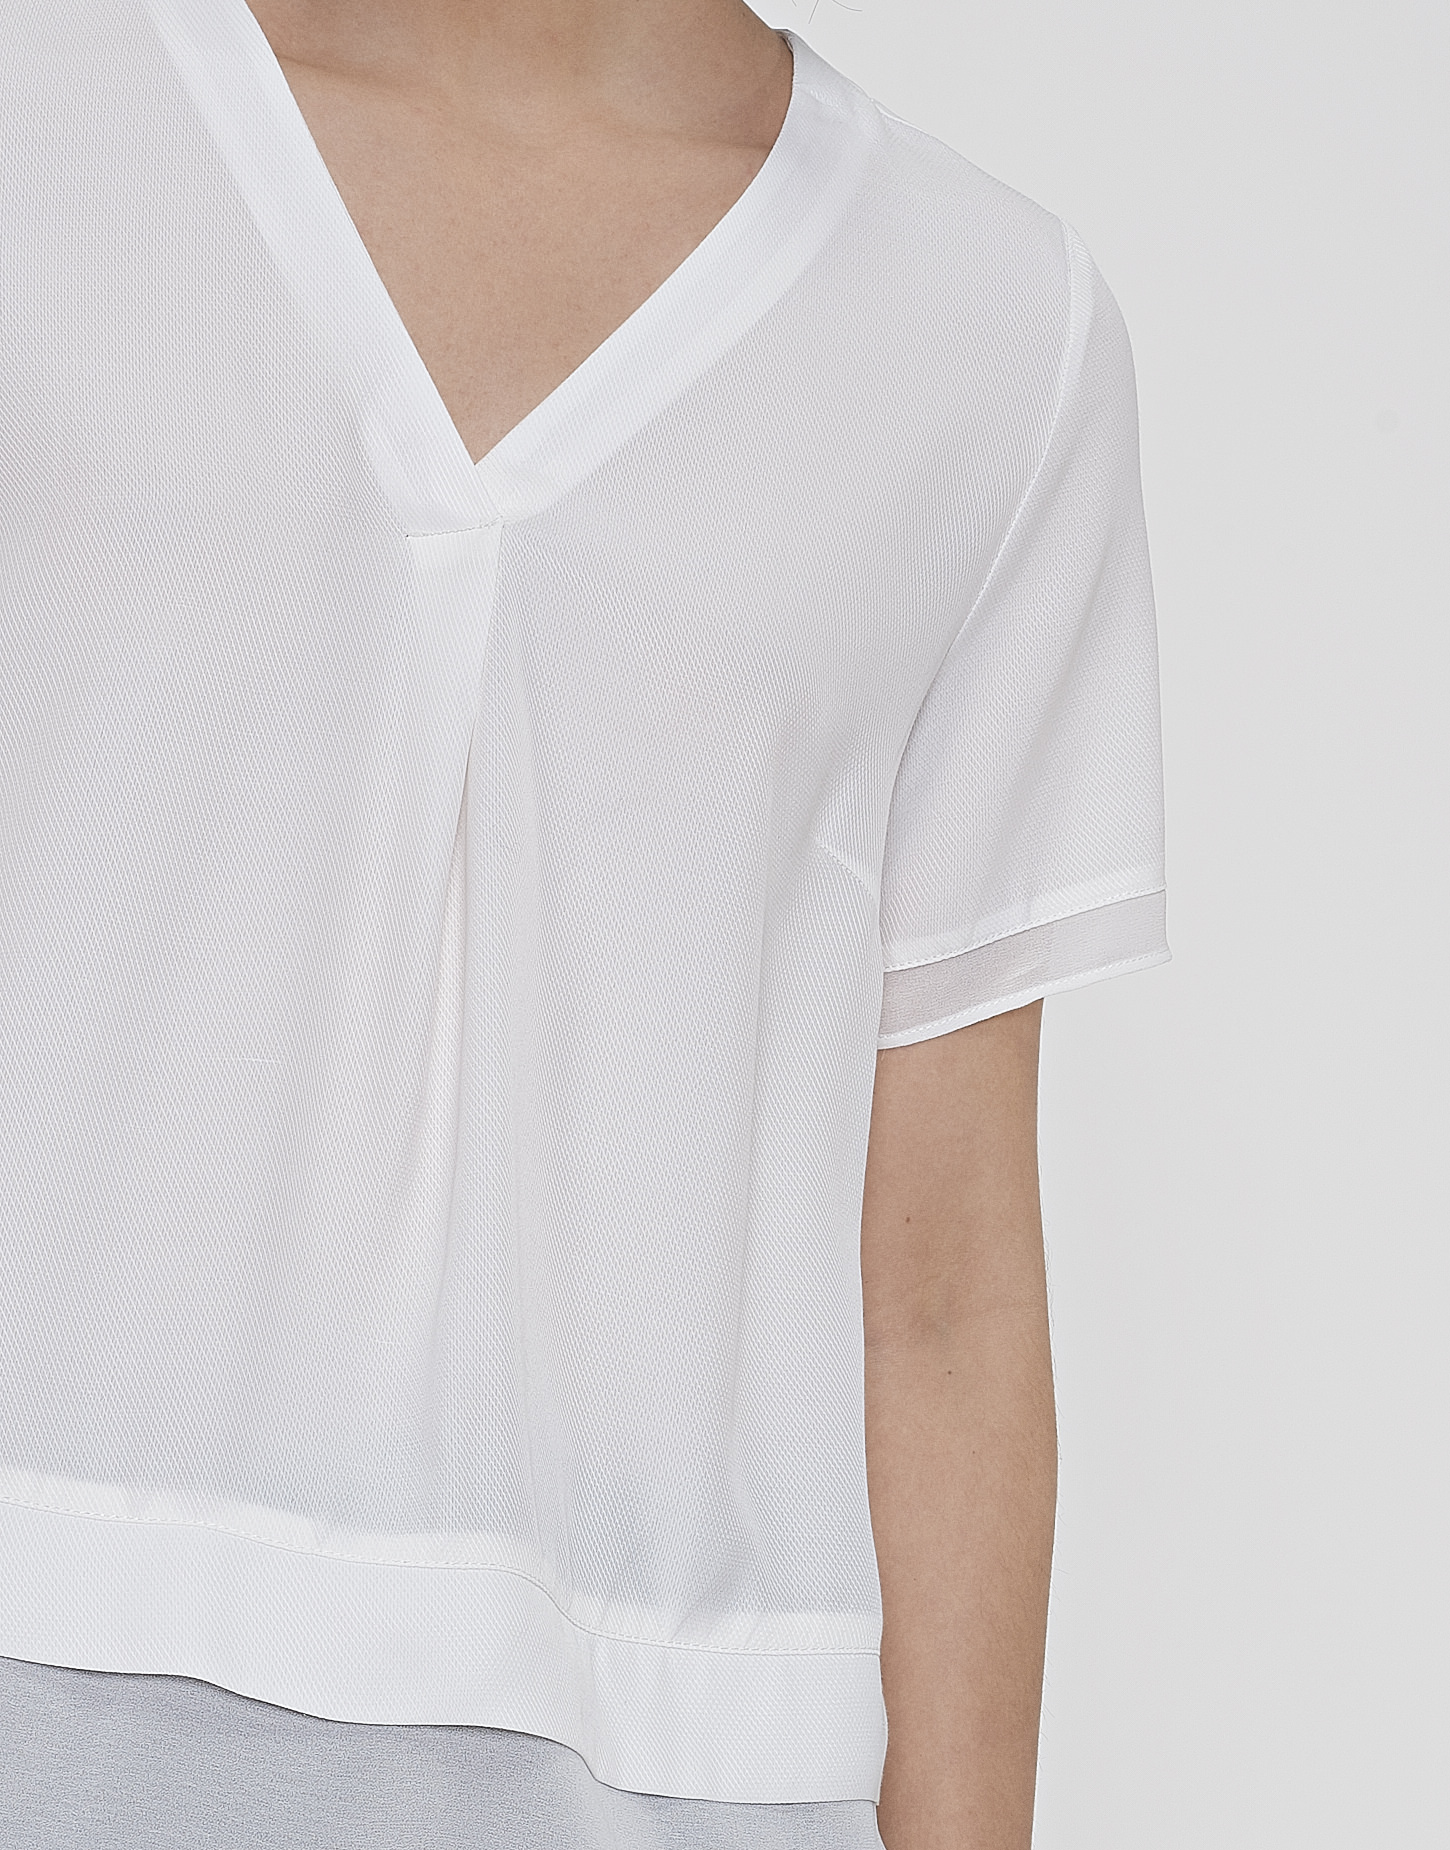 Shirtbluse Filiane OPUS